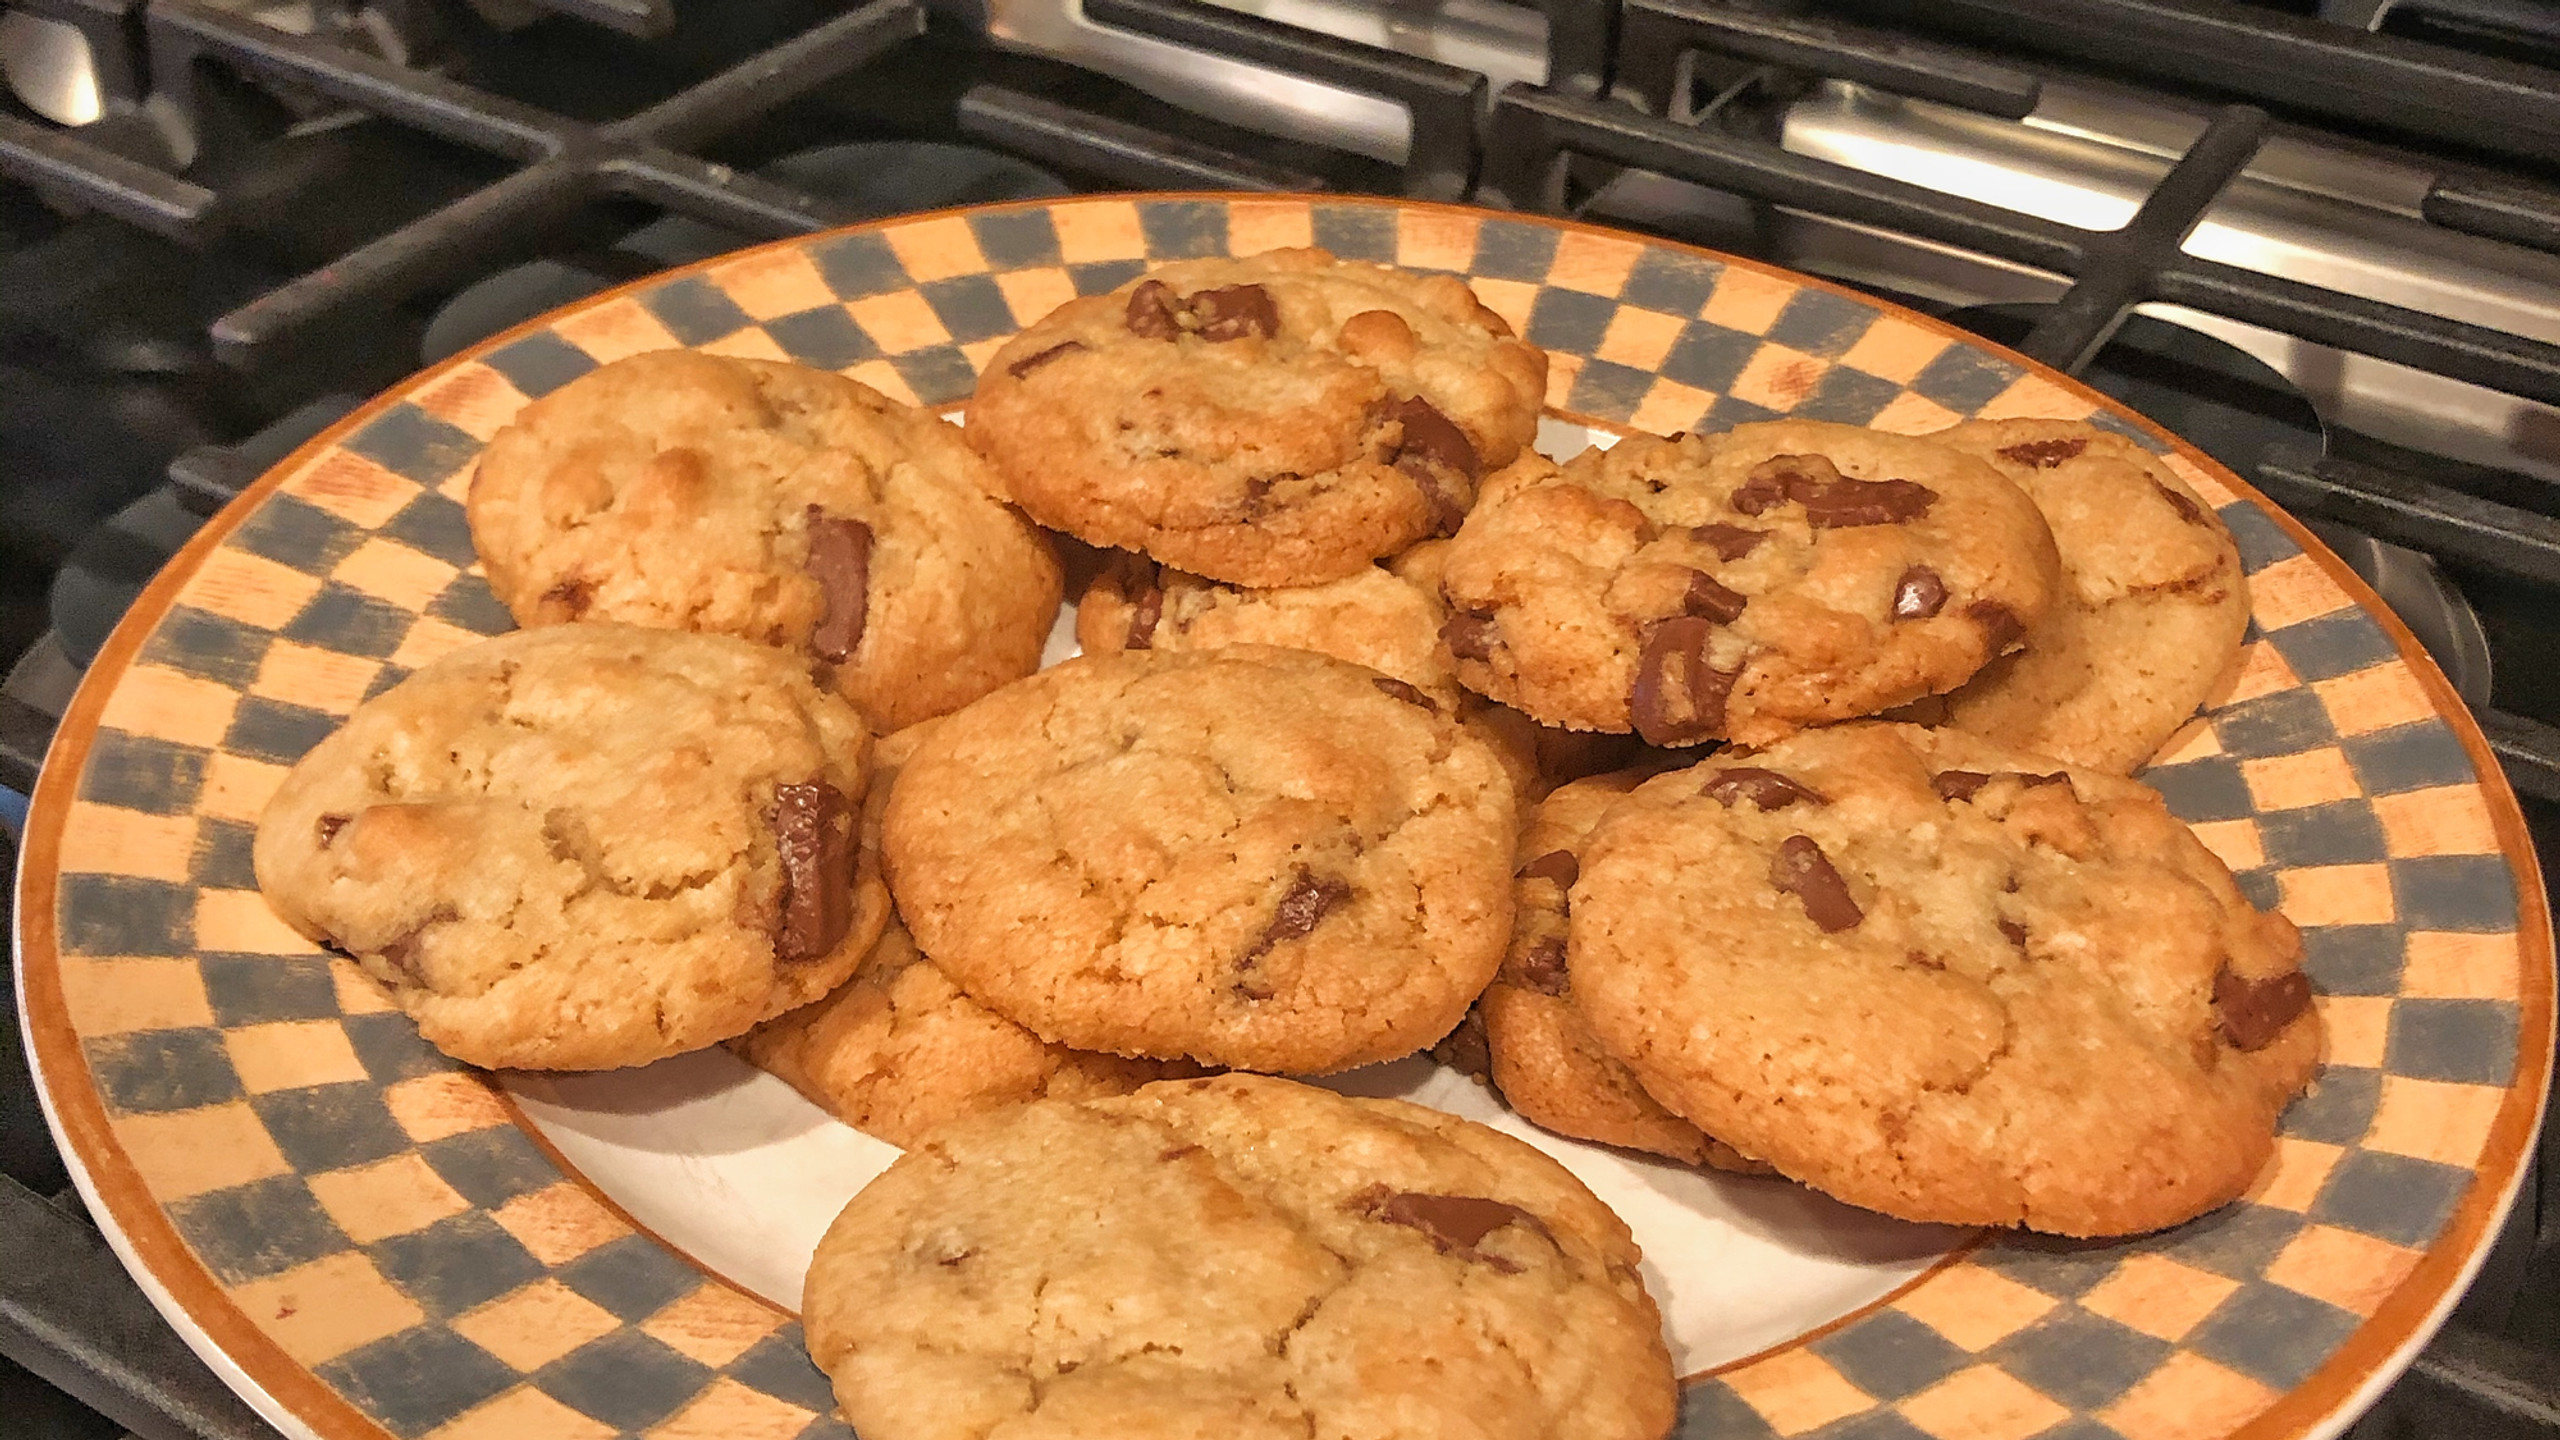 Chocolate chip cookies from Tasty